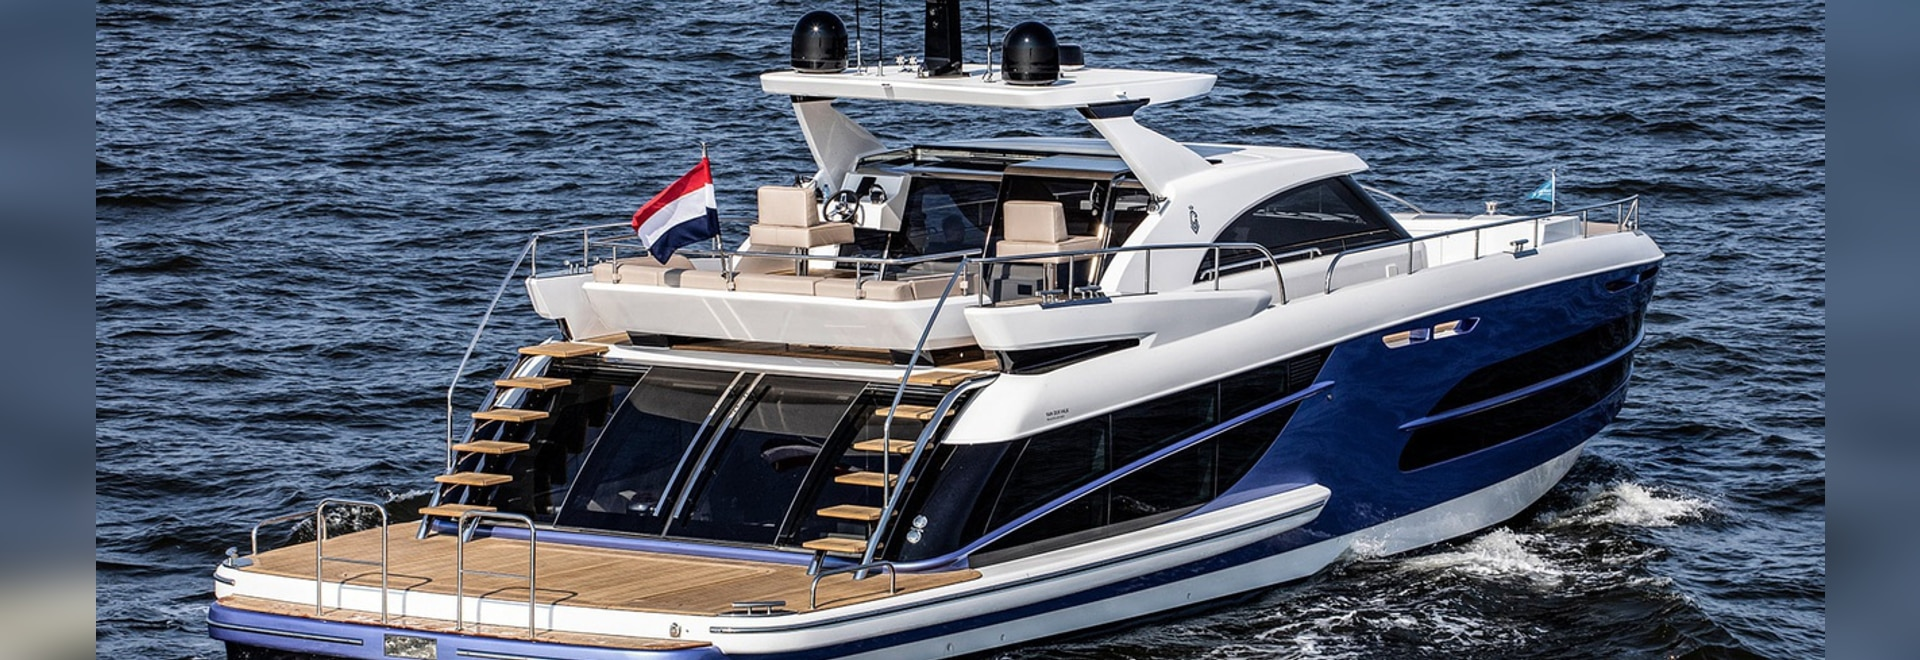 The BeachClub 600 (pictured) is now set to undergo sea trials